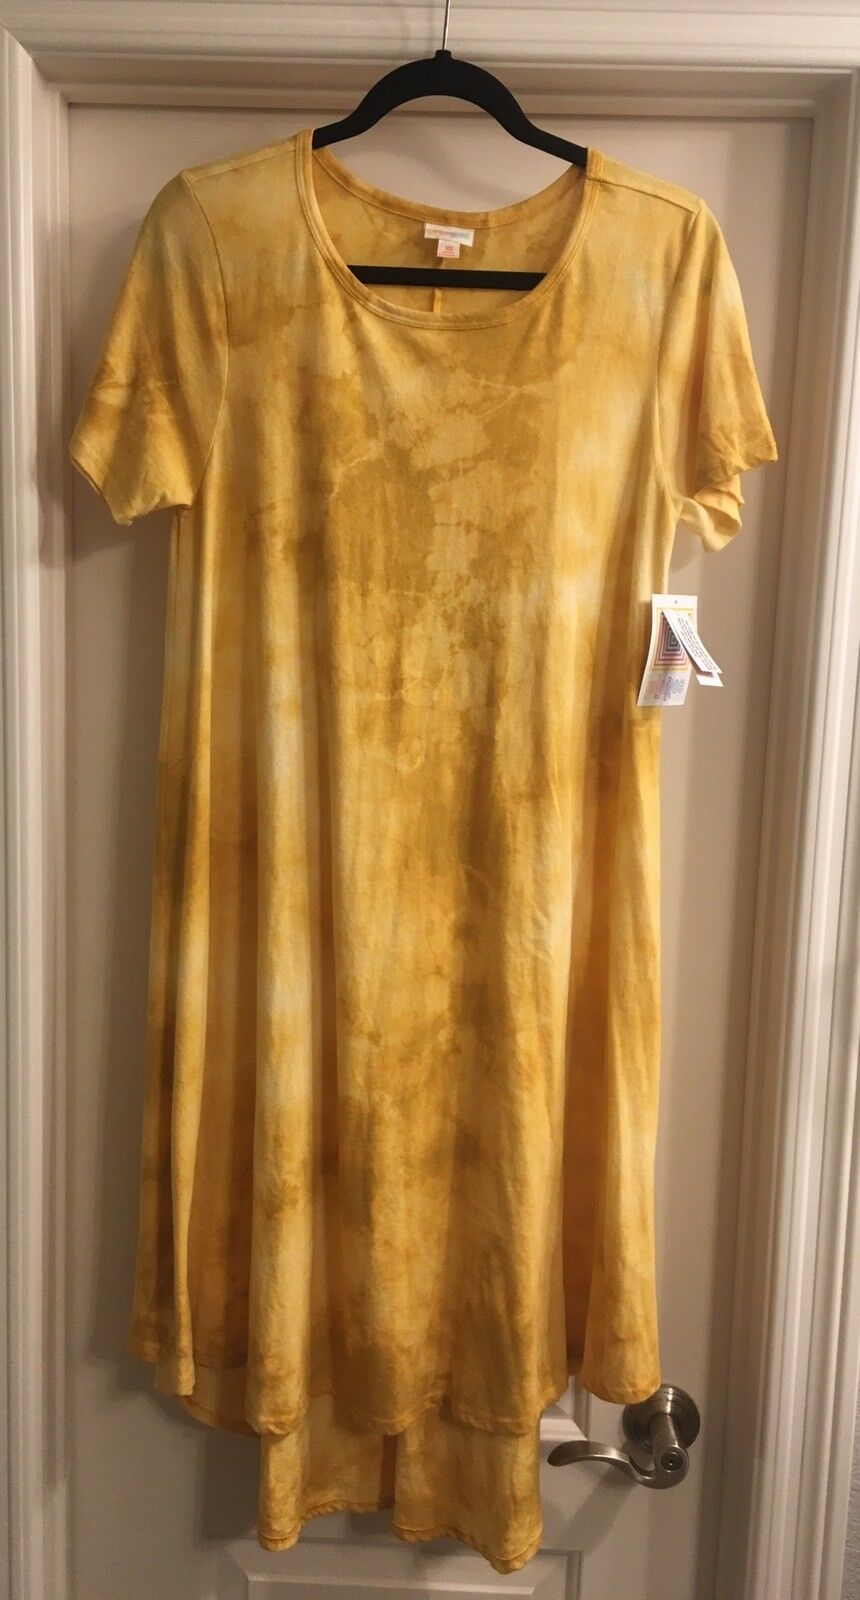 NWT LuLaRoe XS Carly Dress Yellow gold Mustard Tie Dye Acid Wash Unicorn